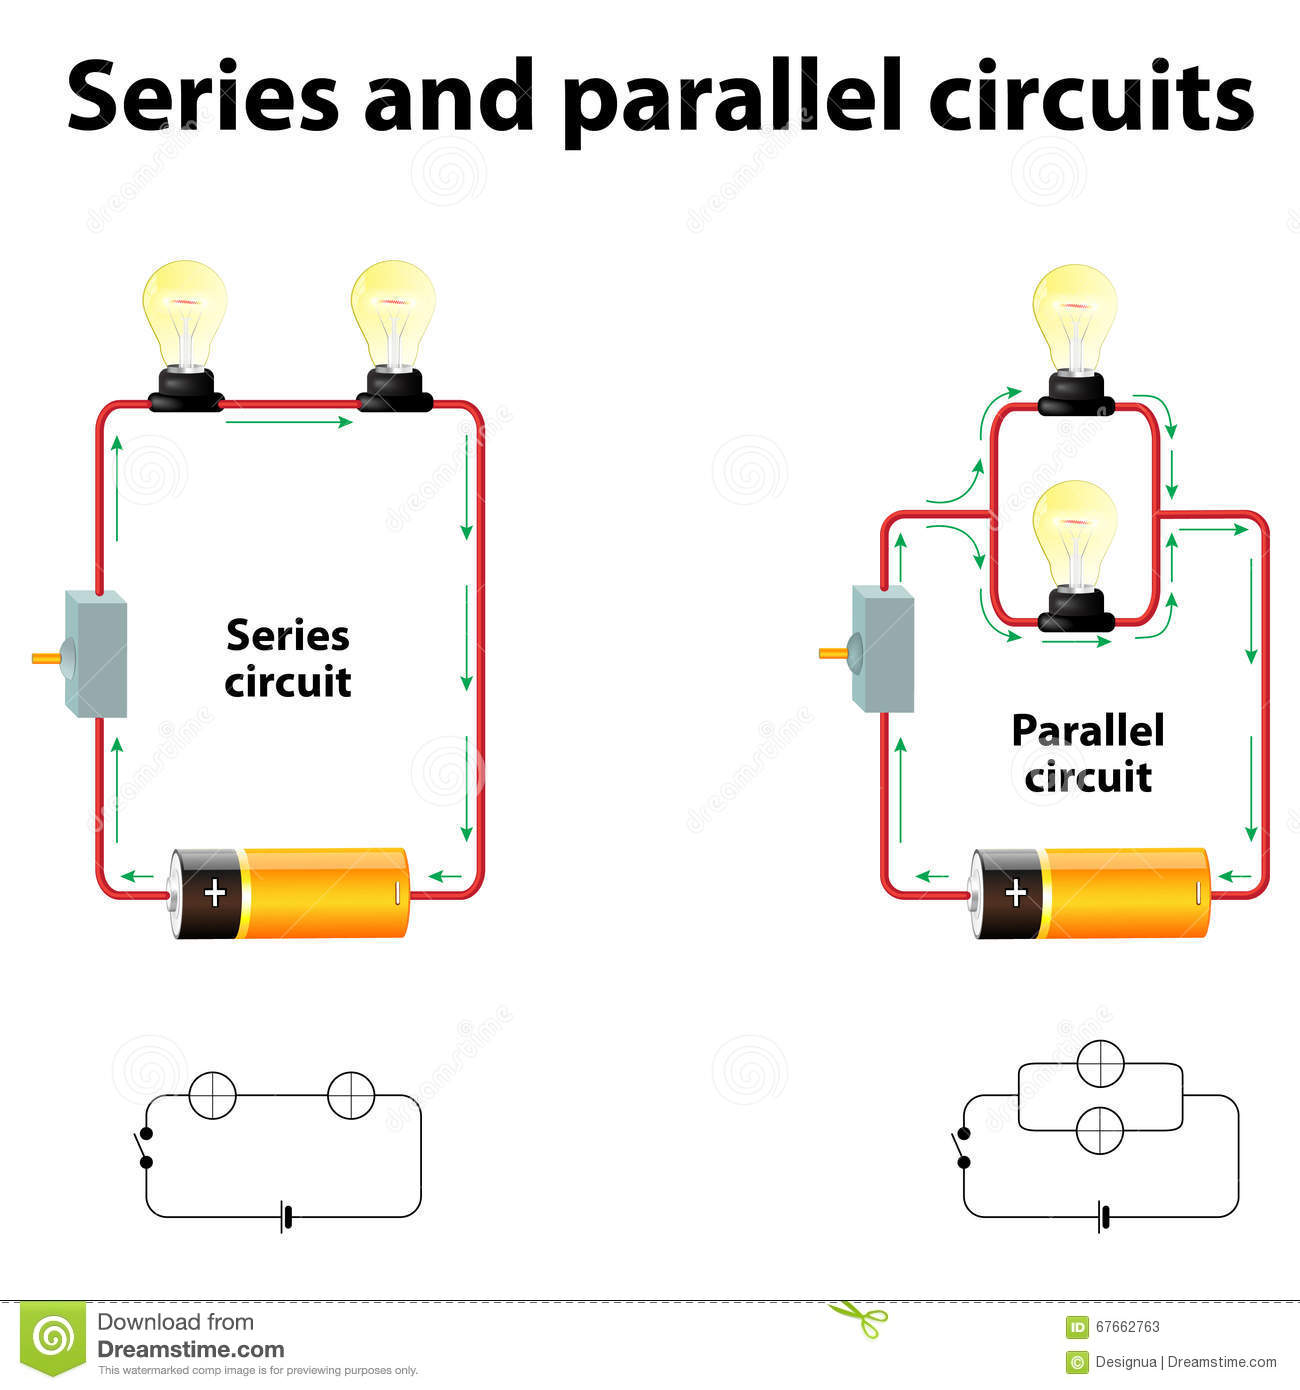 hight resolution of series and parallel circuits in series are connected along a single path so the same current flows through all of the components